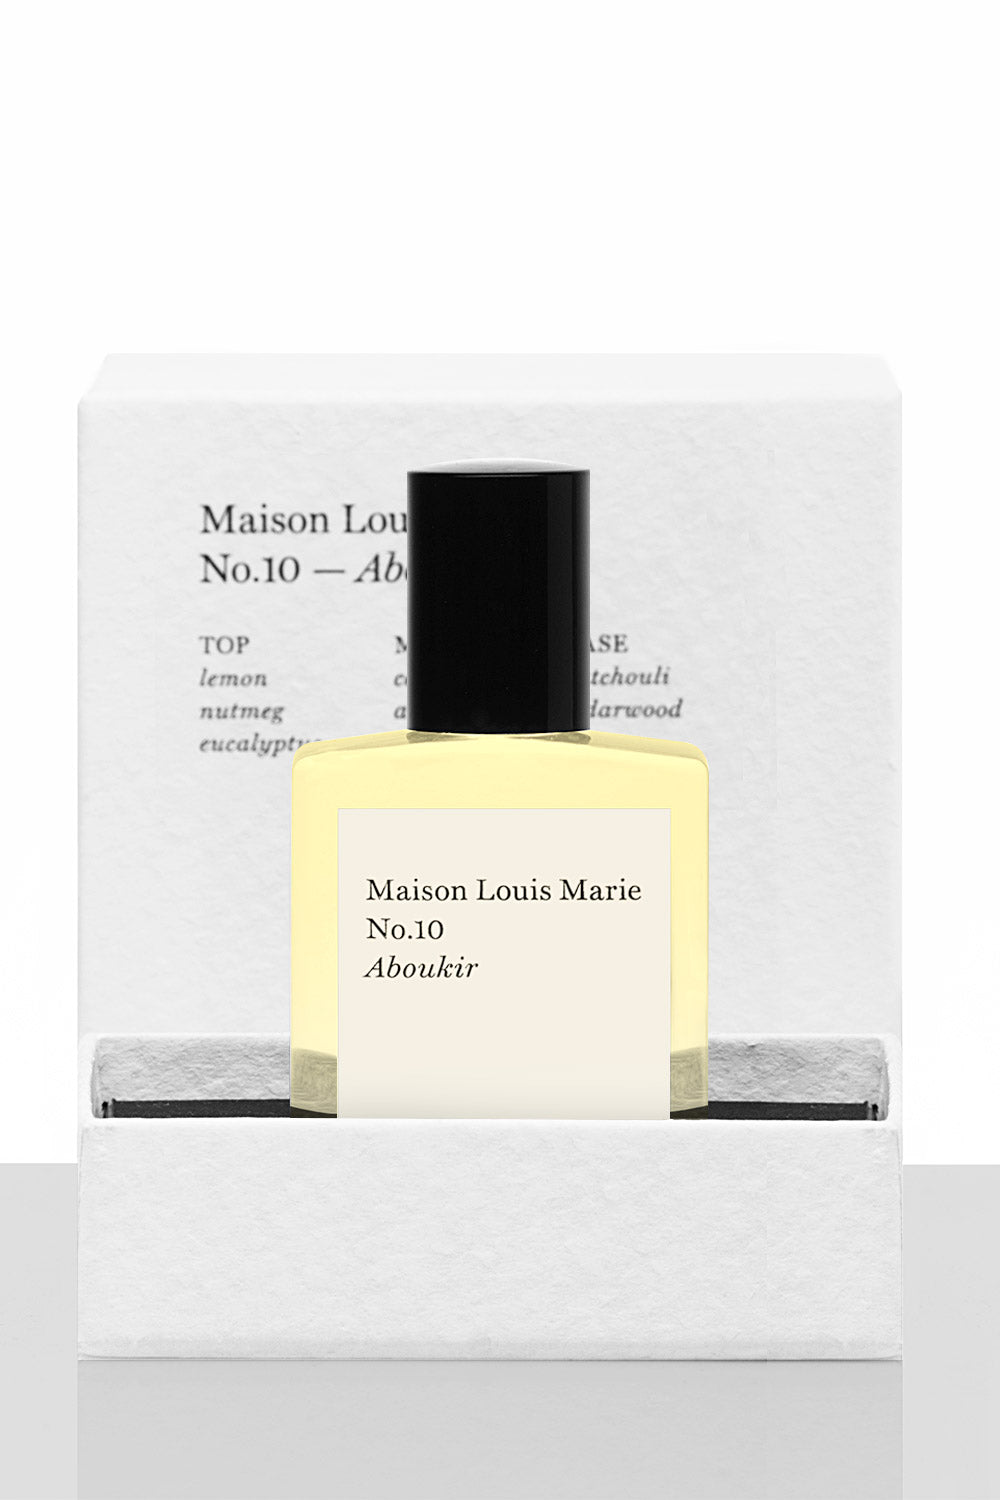 Maison Louis Marie No. 10 Aboukir Perfume Oil - Vert & Vogue